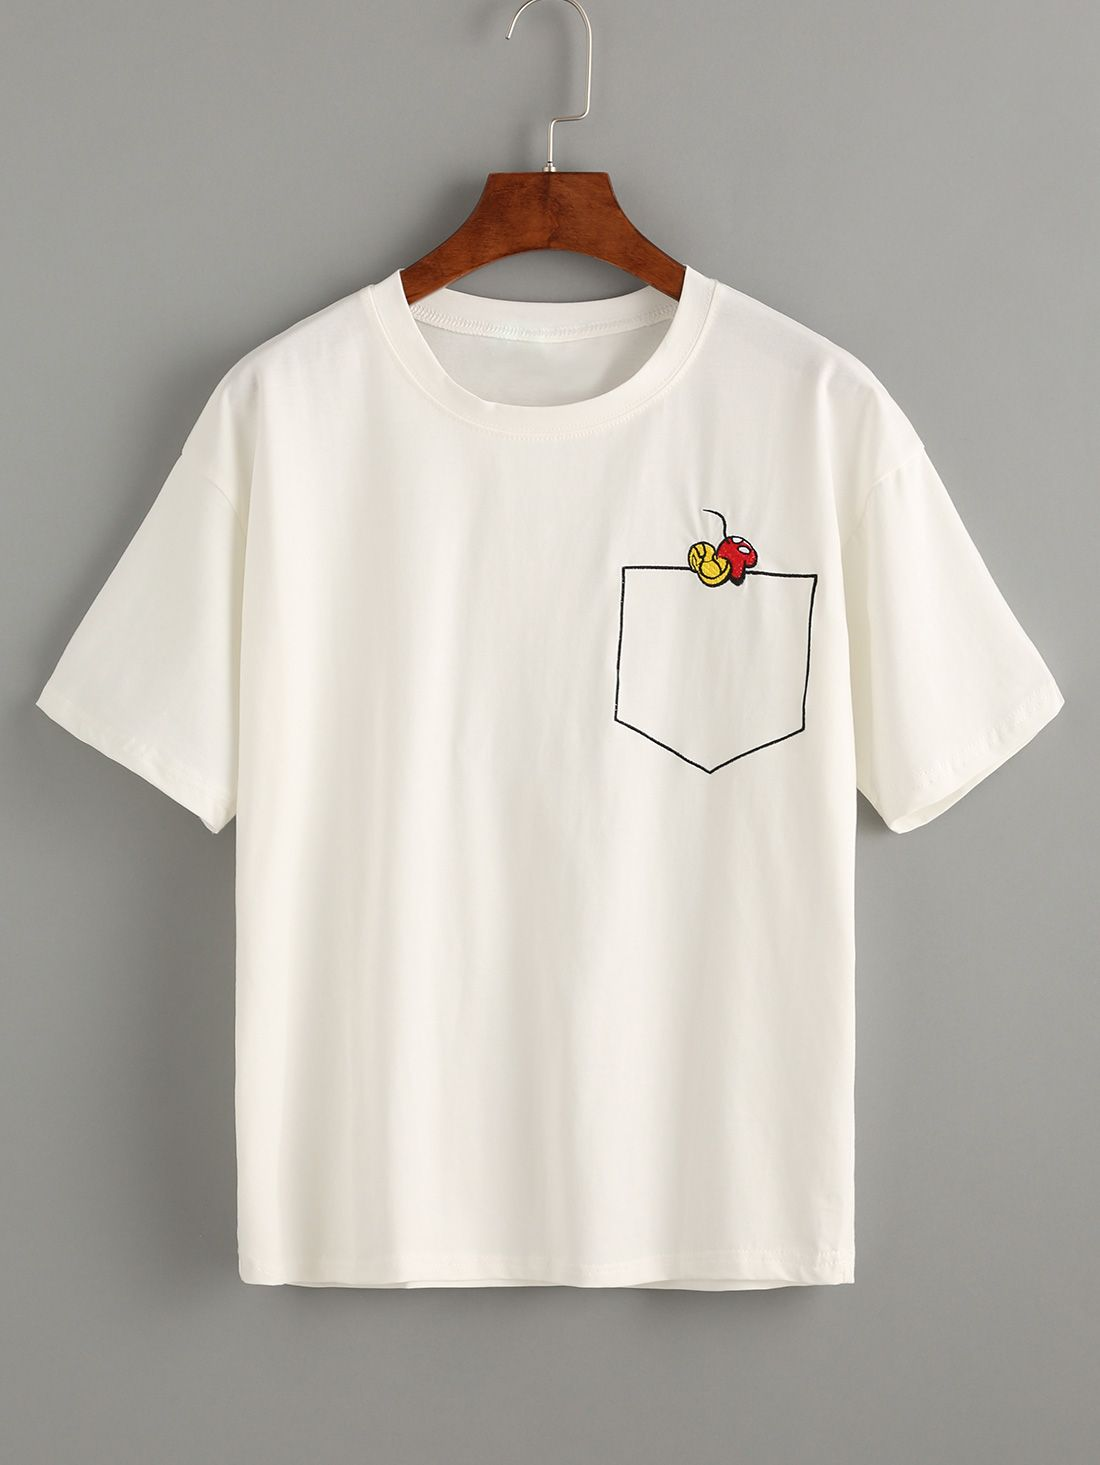 White T-shirt With Embroidery 8.99   Aesthetic shirts ...